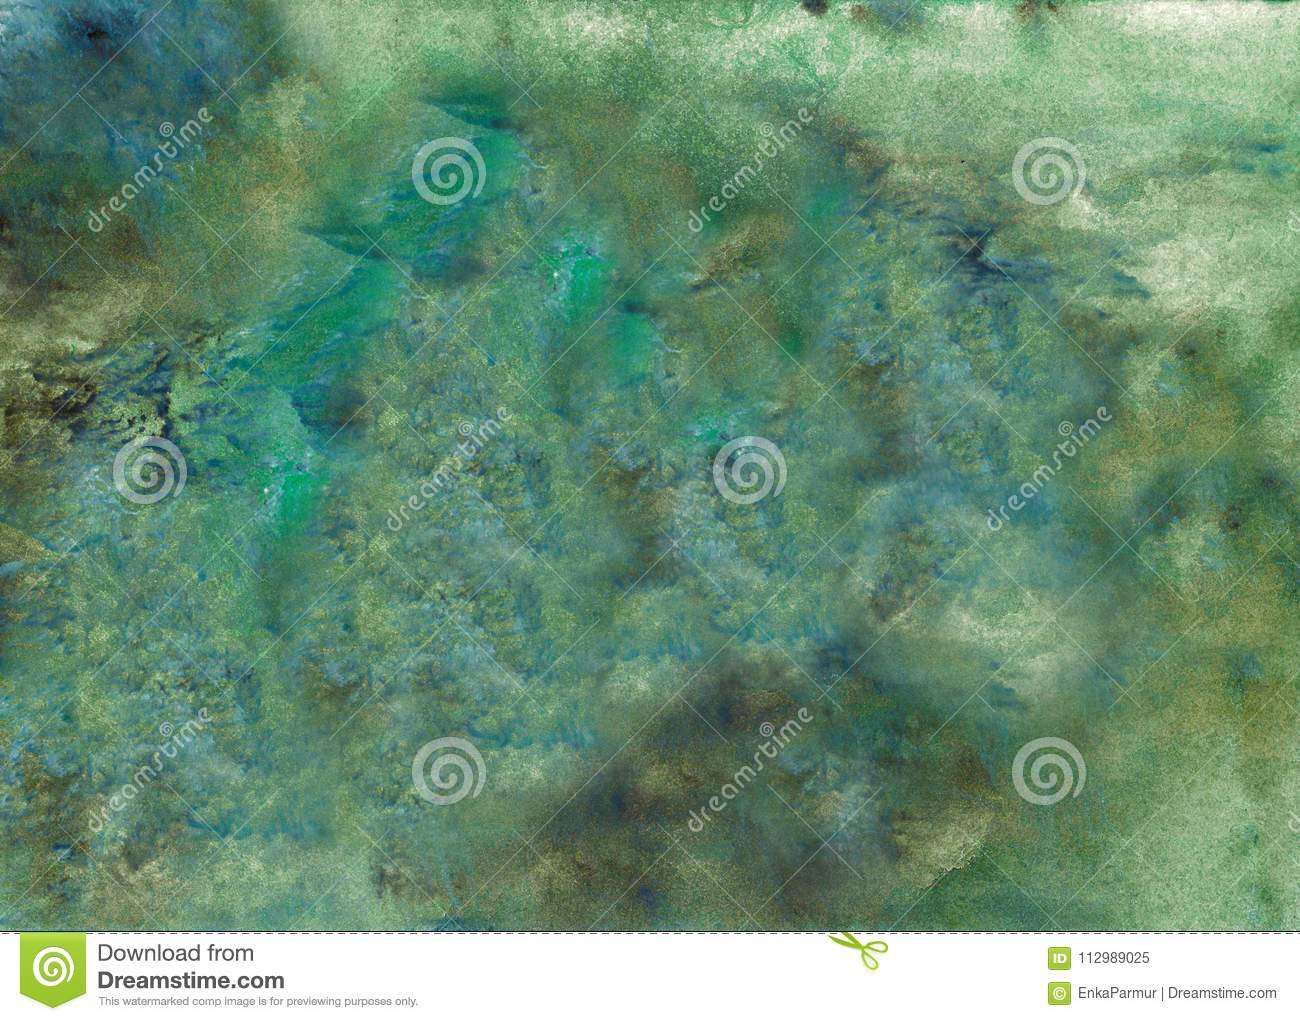 Abstract acrylic painted background. Mixed Green, black, blue textured vibrant color. Grunge template for your design.